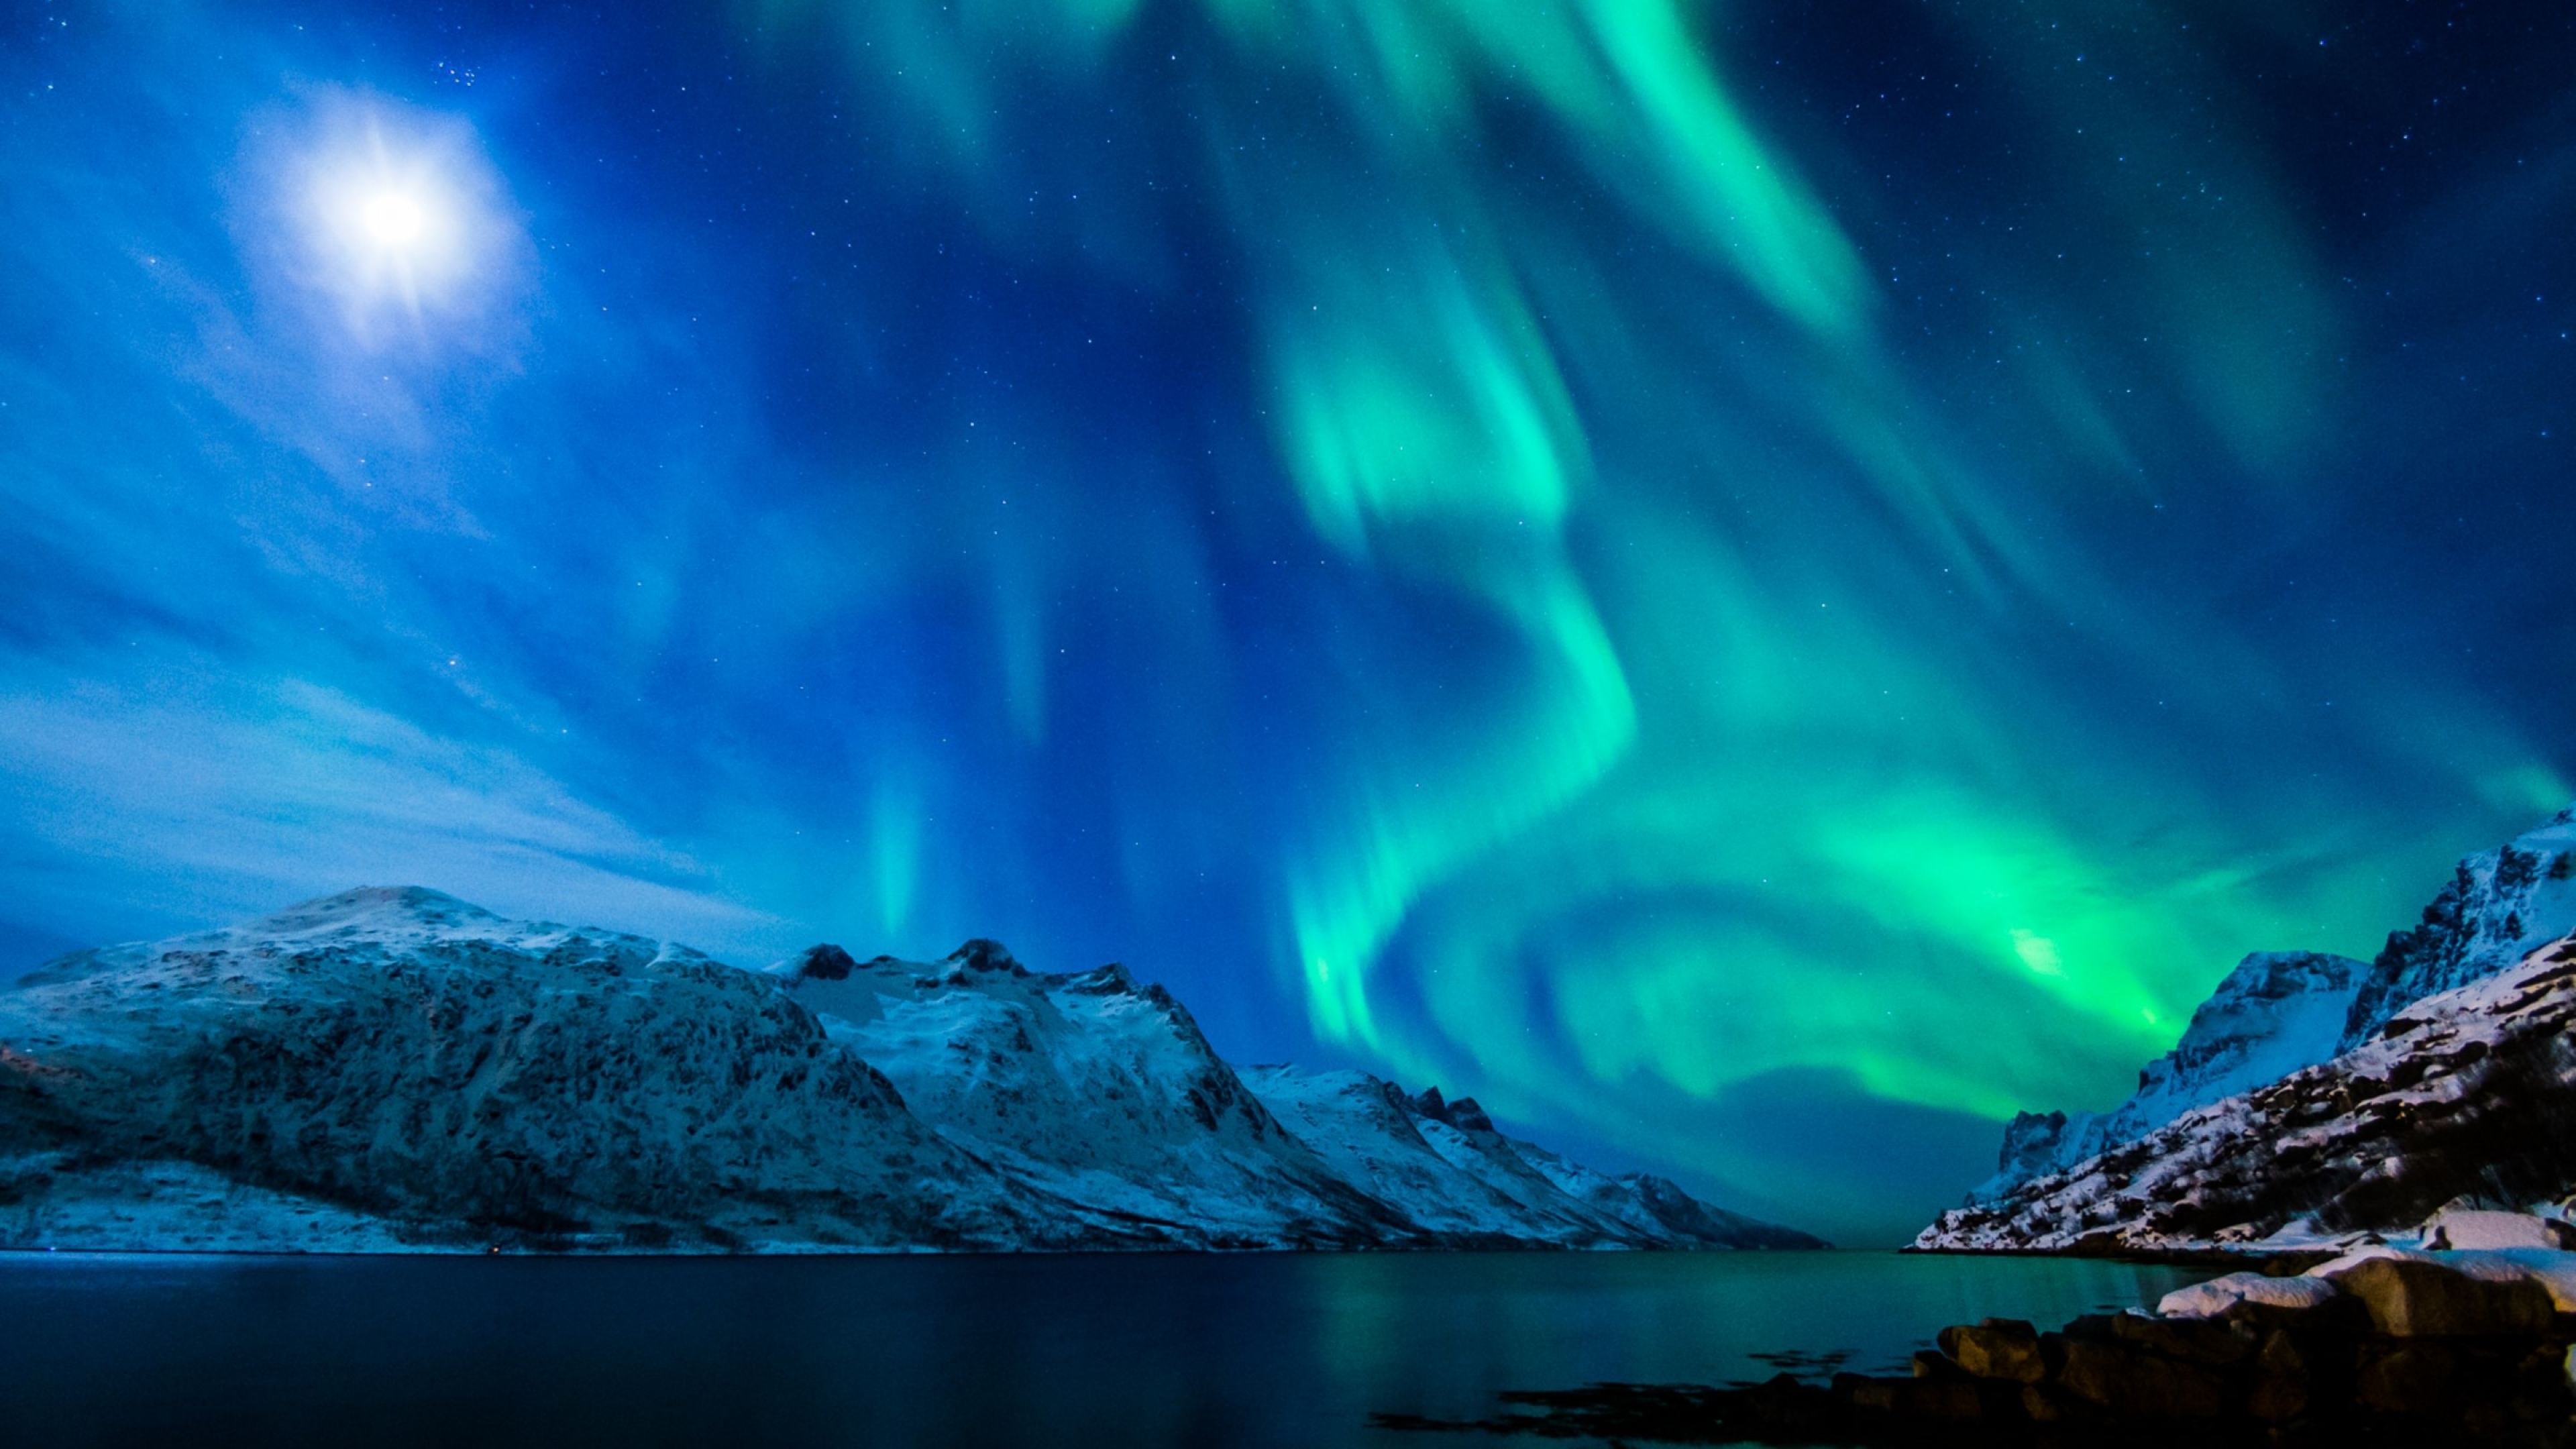 northern lights hd backgrounds | pixelstalk